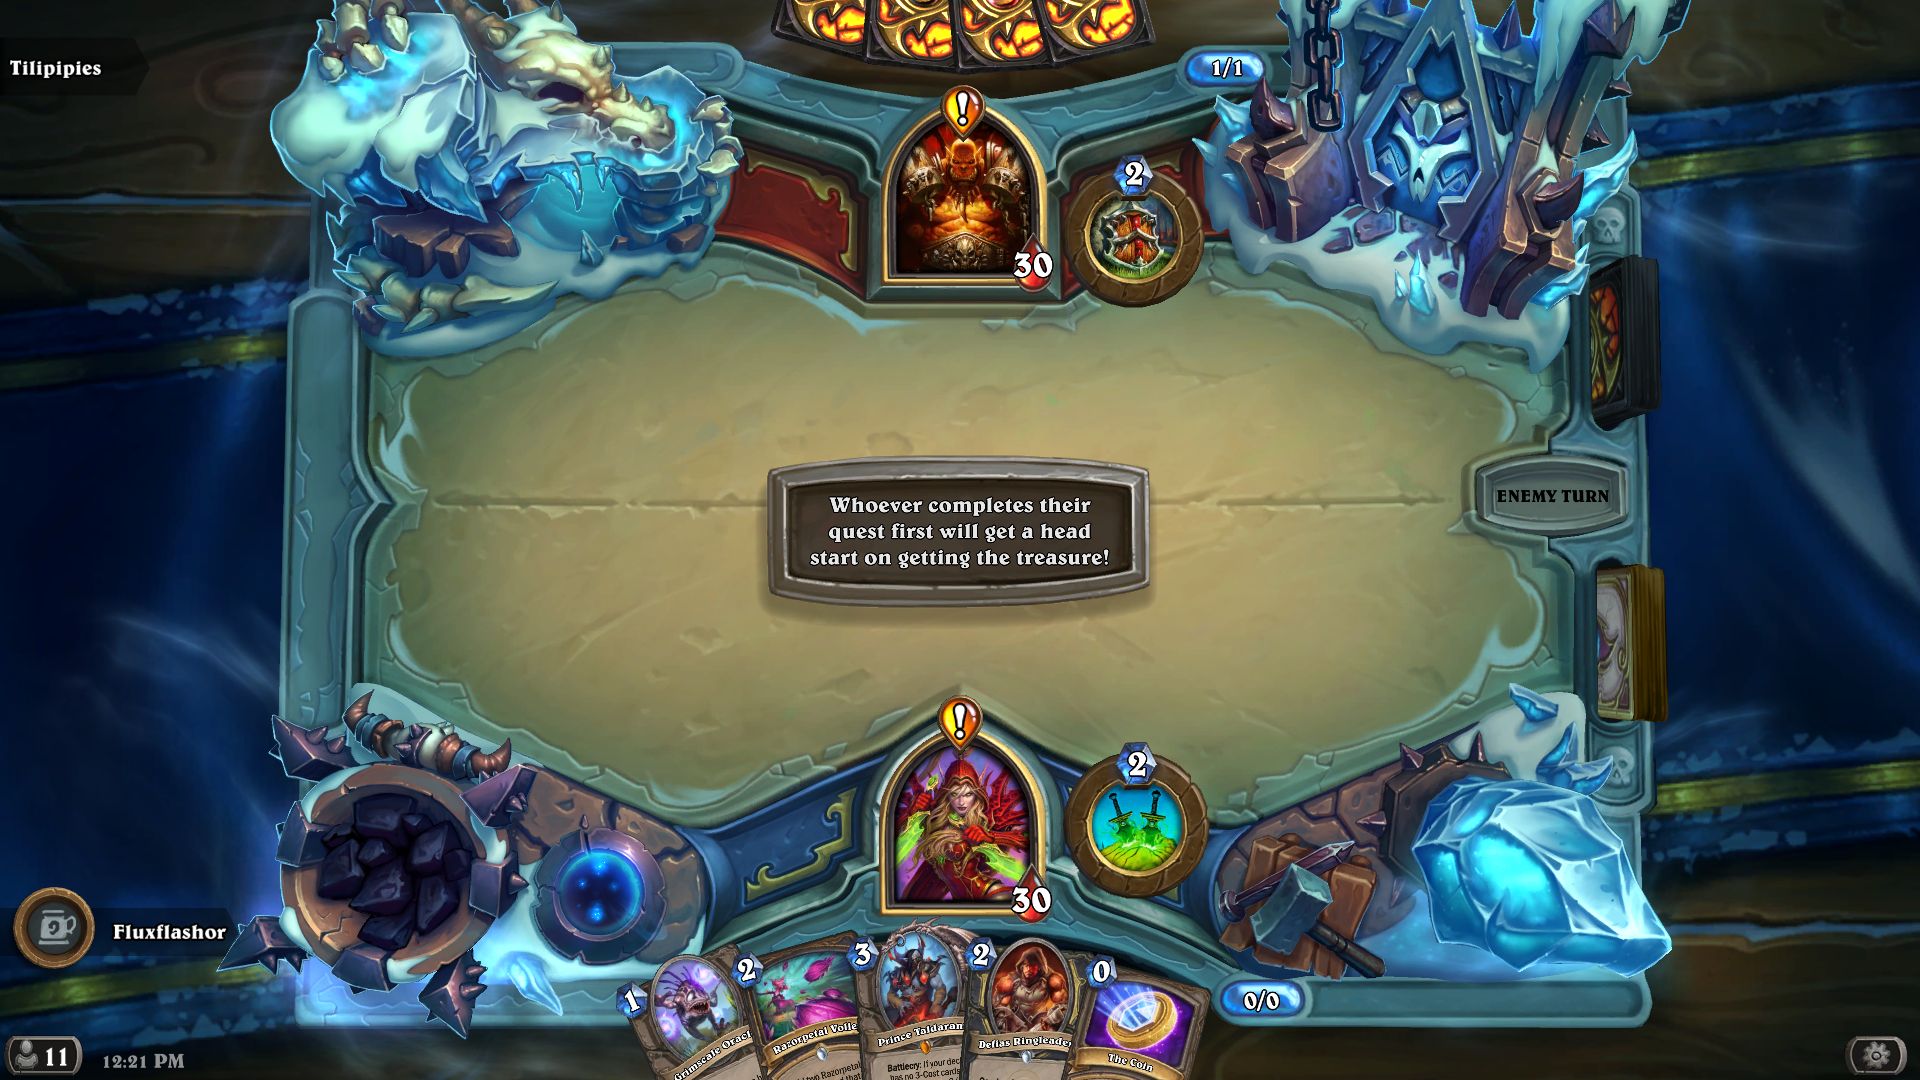 Treasure in the Catacombs is This Week's Brawl! Get a